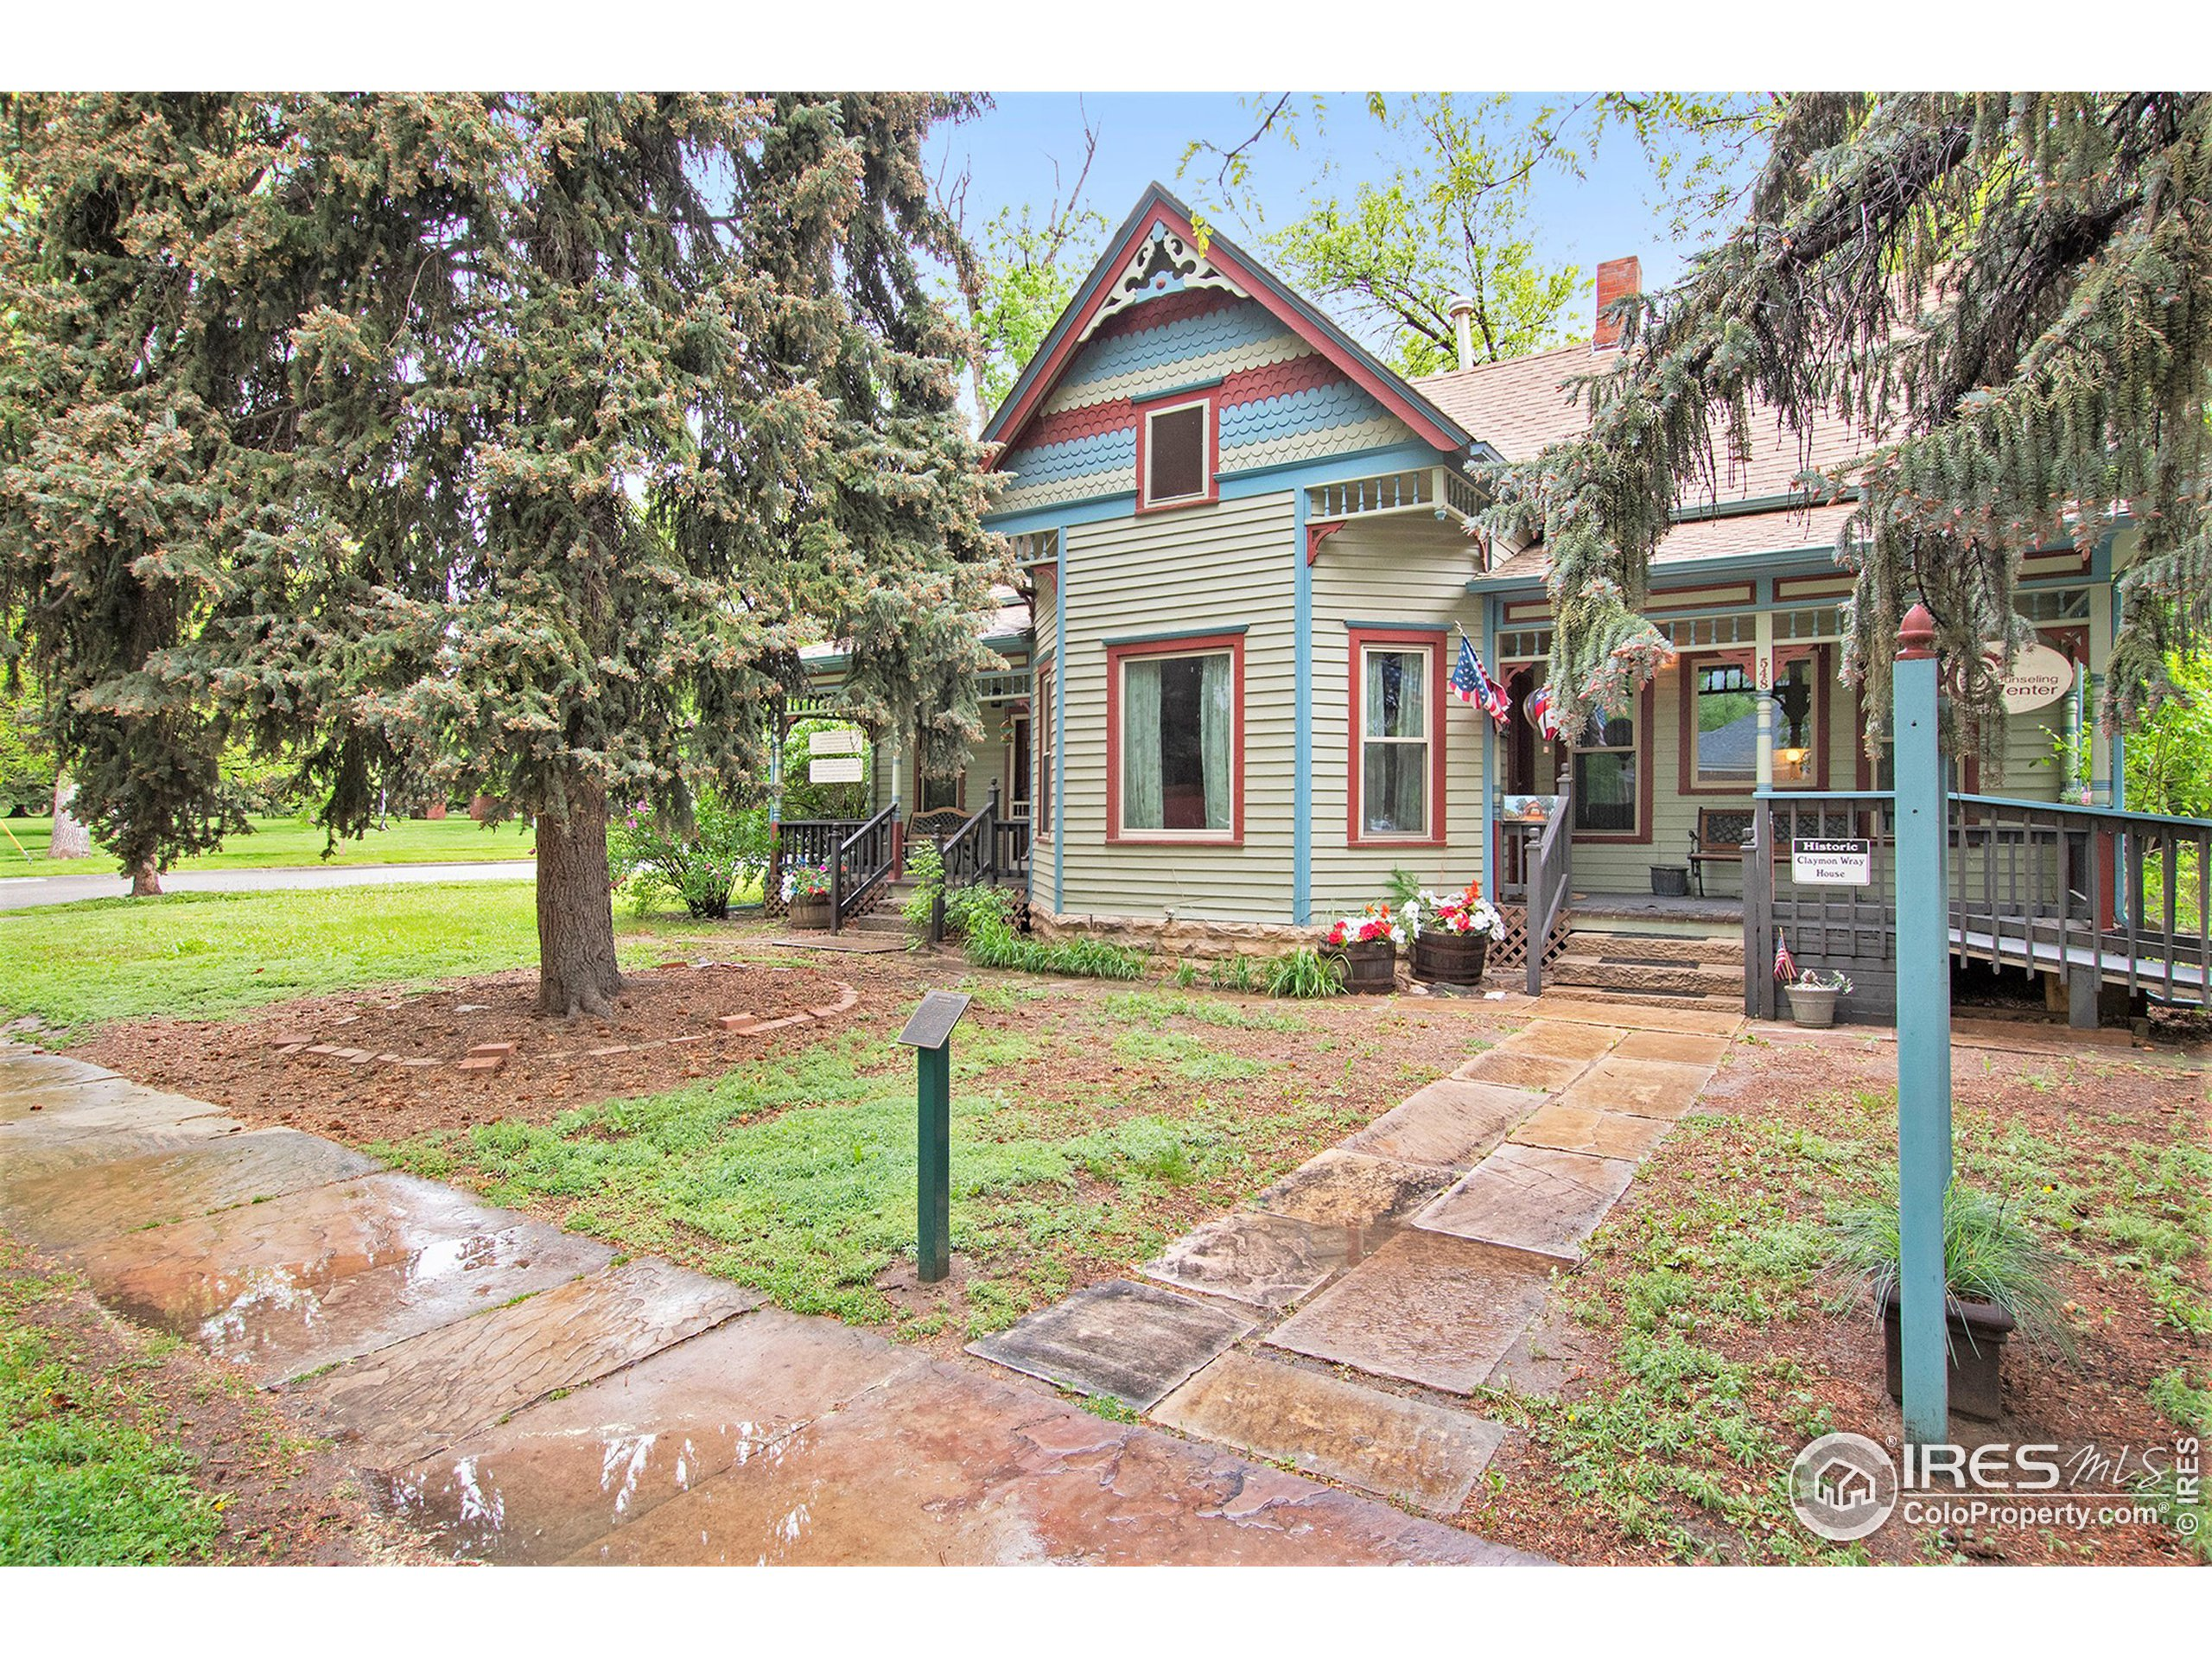 This downtown Berthoud  gem located by historical Fickle Park was built in 1903 & is part of the historic society. Perfect for small company with individual offices. NEW Windows, NEW Paint, NEW Steel Exterior Doors, NEW Ceilings, NEW Water Heater, NEW tile in the kitchen. Updated bathrooms. W/D Hookups, Newly grated Parking,  Extremely large corner lot for expansion. Property  for ALLOWS for another building by the shed. LOTS of potential. Small barber shop with 1/2 bath. Furnishings negotiable.